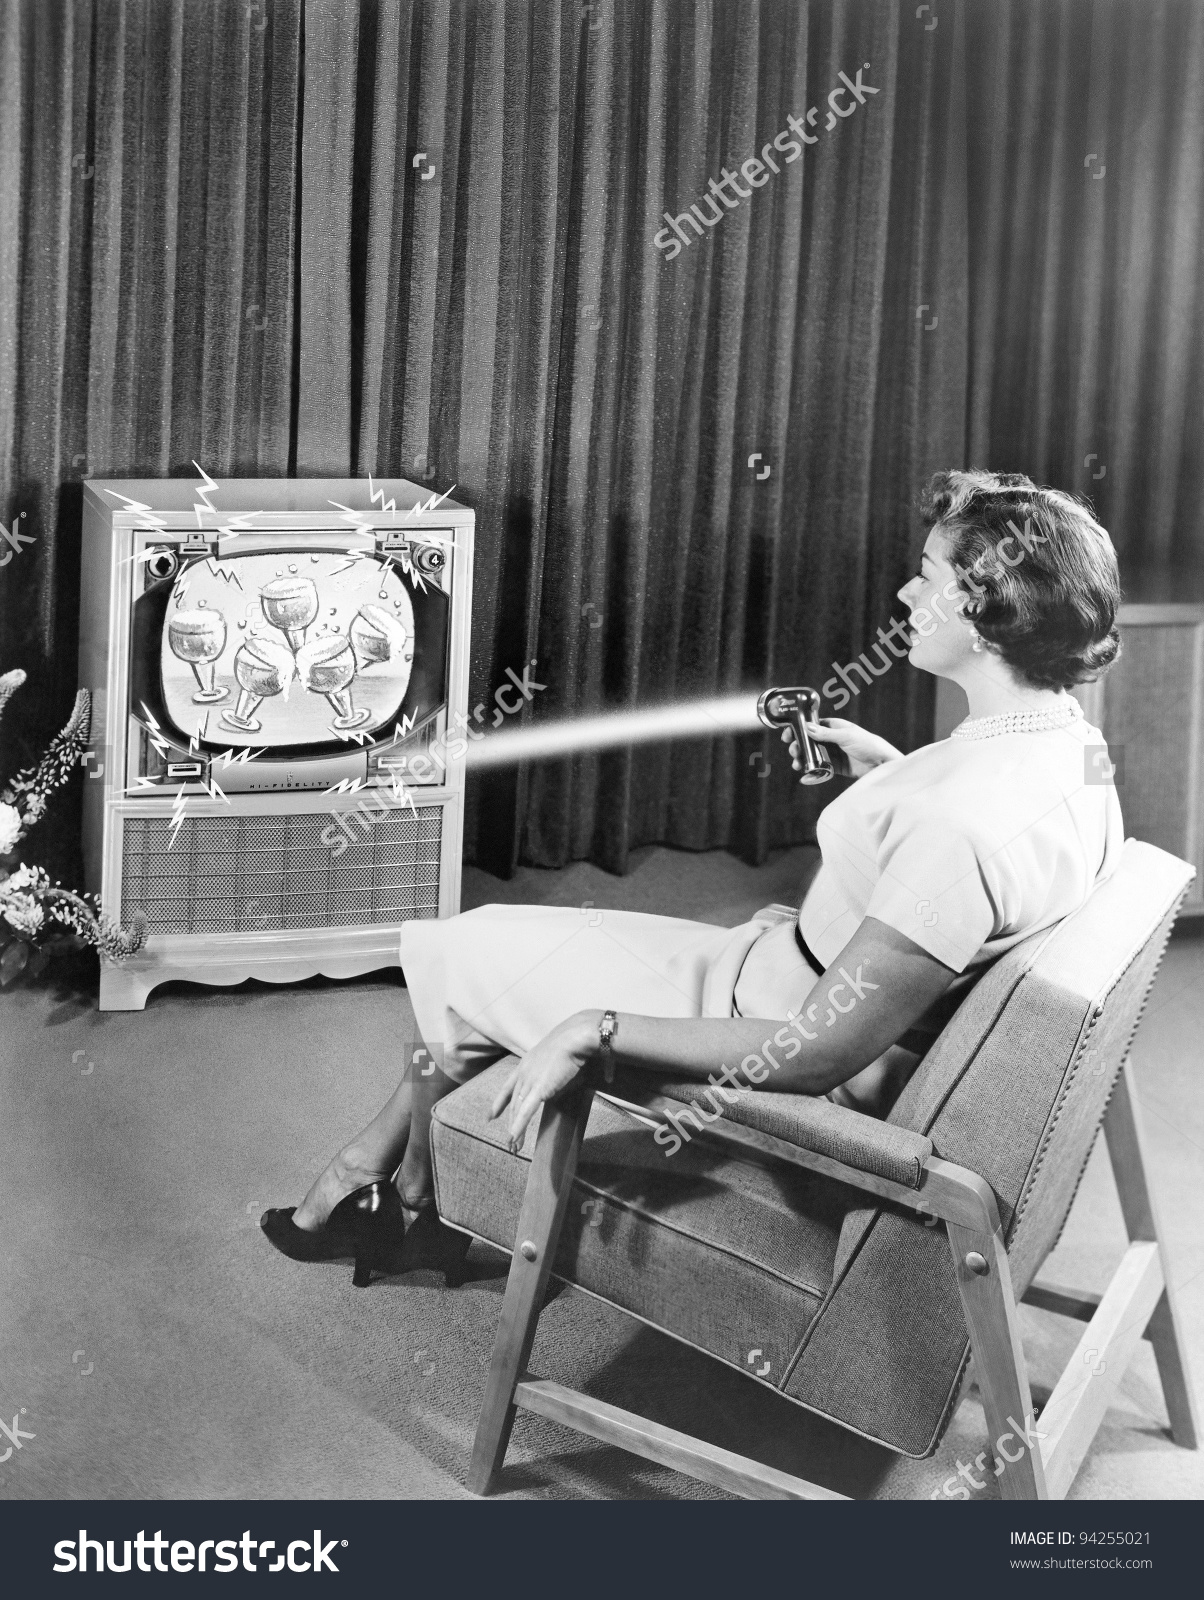 stock-photo-early-zenith-remote-control-tv-set-june-94255021